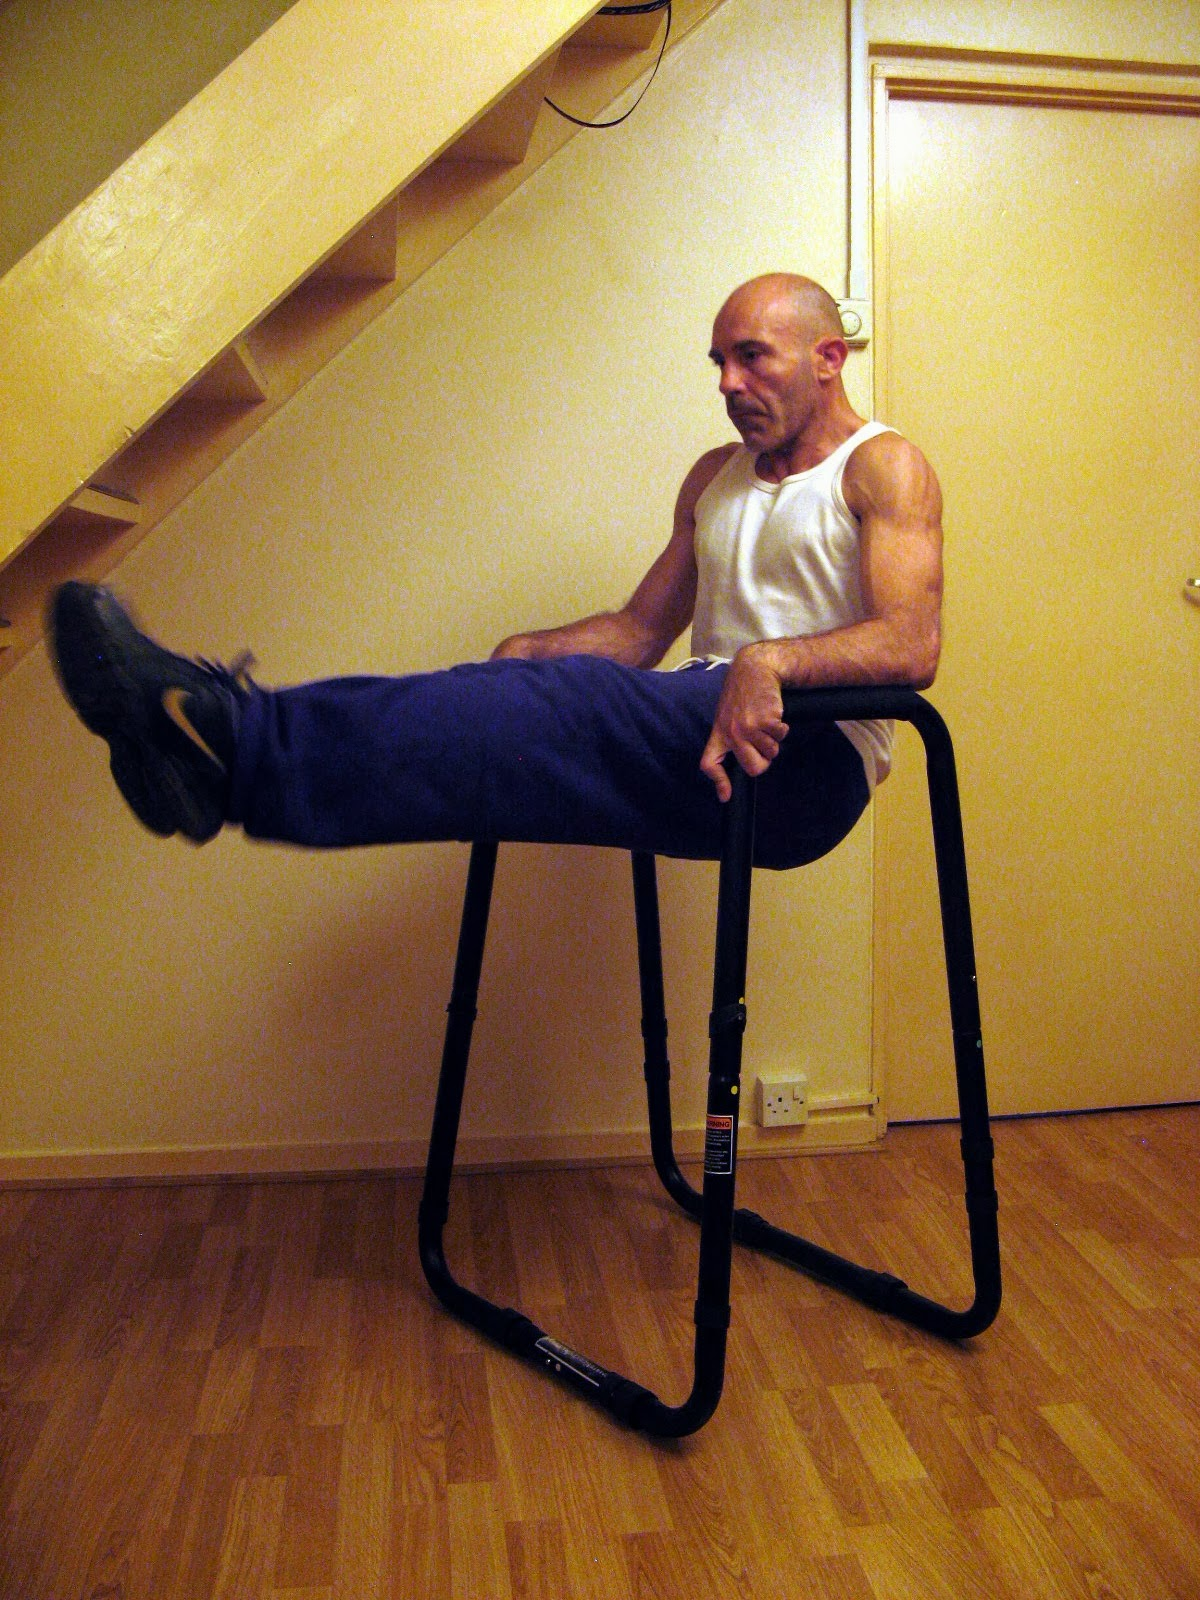 Roman Chair Alternative Dark Wood Table With White Chairs Experiment 4 Core Assassins Nerd Fitness Rebellion